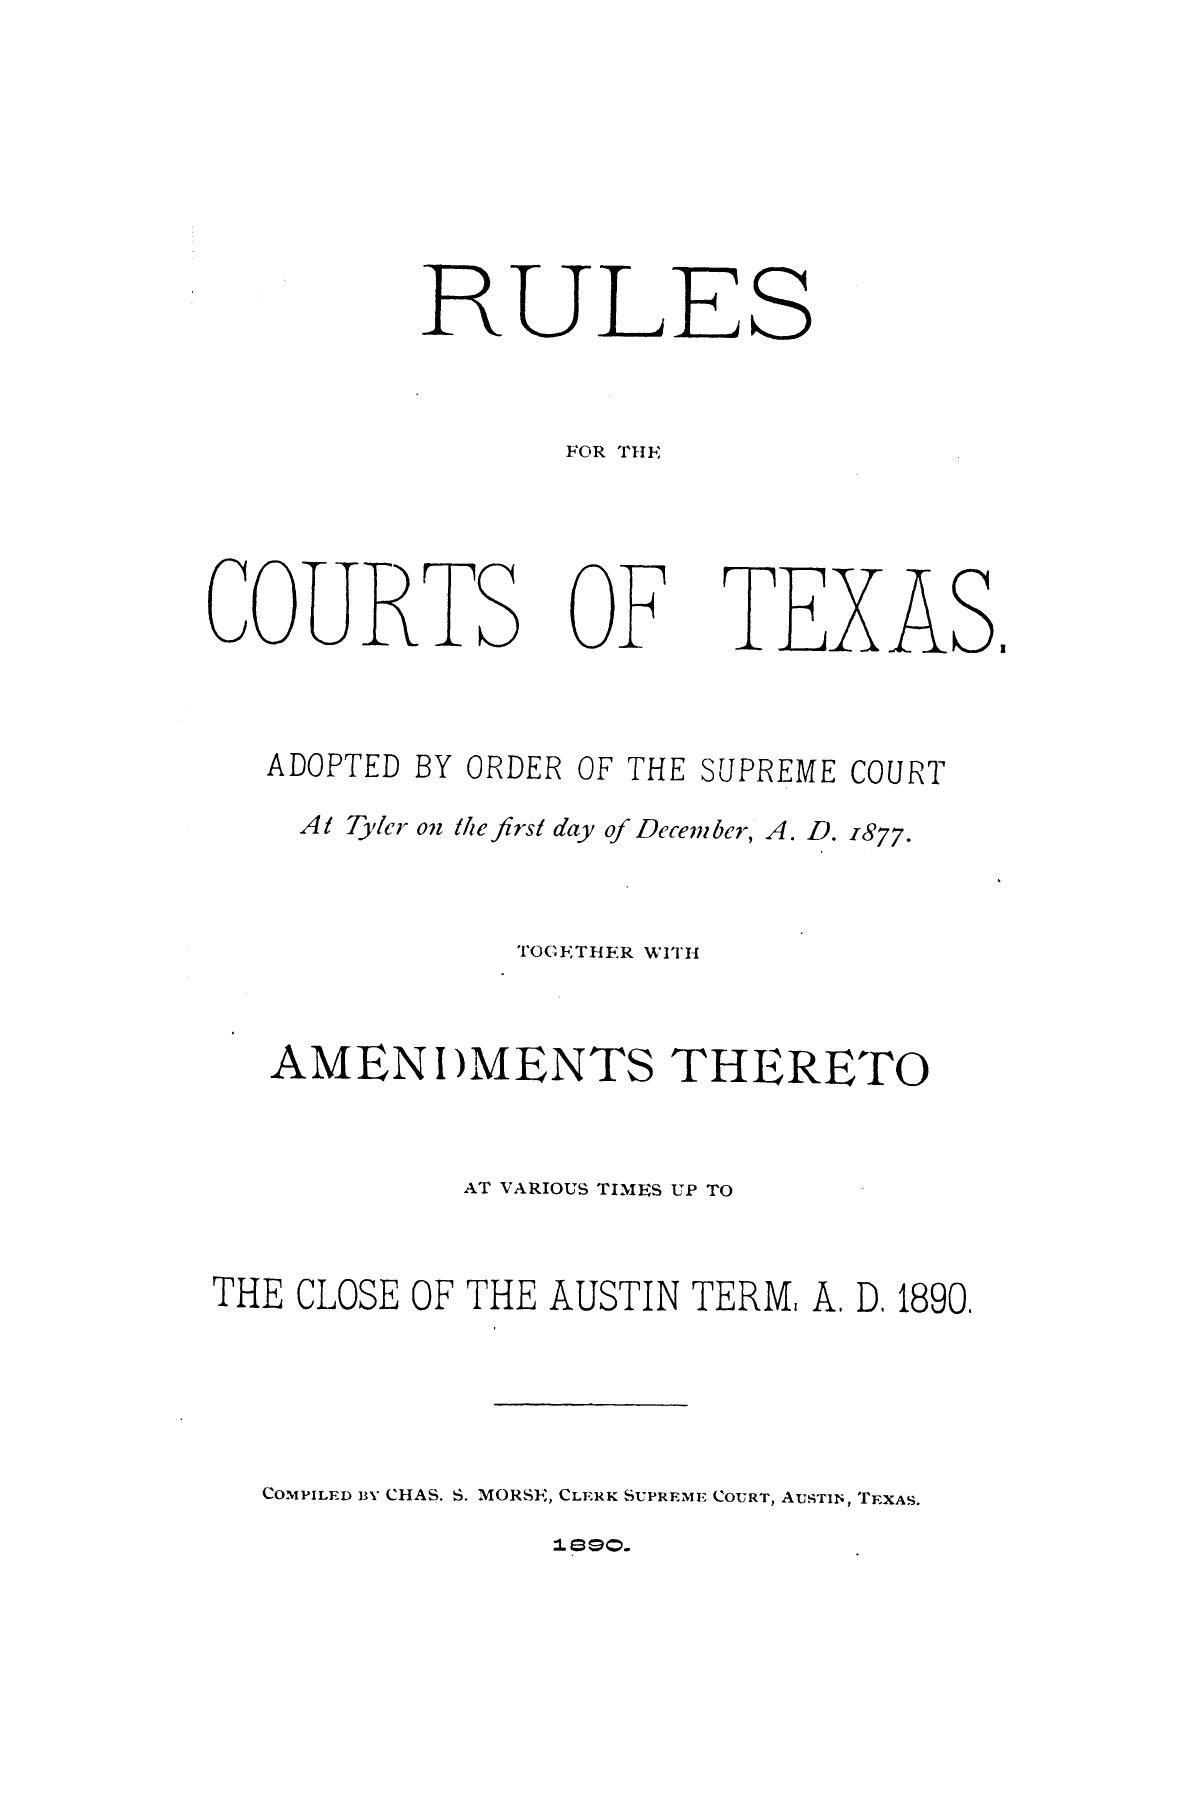 Rules for the courts of Texas: adopted by order of the Supreme Court at Tyler on the first day of December, A.D. 1877: together with amendments thereto at various times up to the close of the Austin term, A.D. 1890                                                                                                      [Sequence #]: 3 of 64